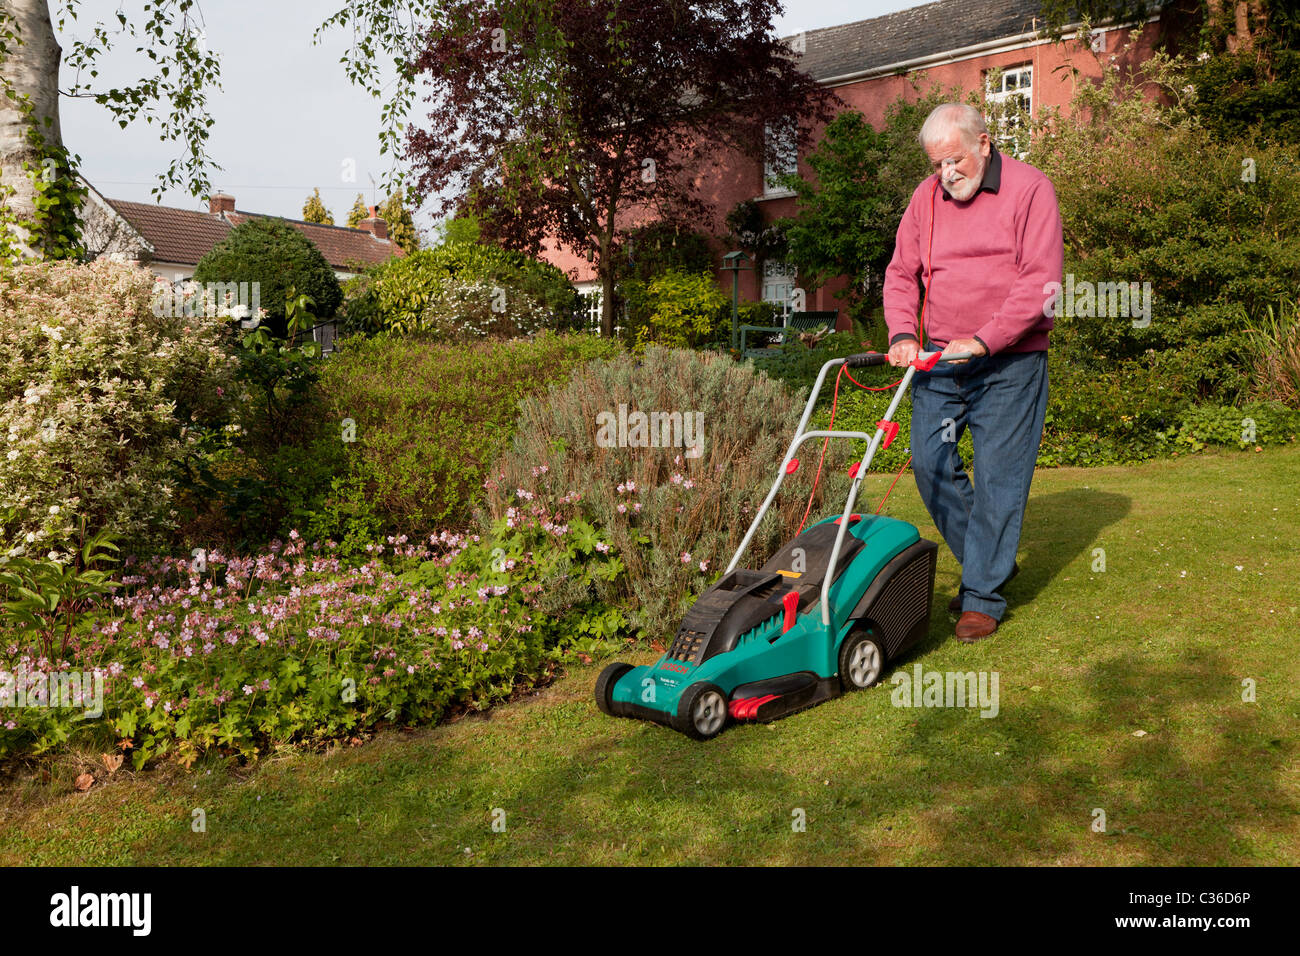 OLDER MAN MOWING LAWN WITH ELECTRIC MOWER UK - Stock Image